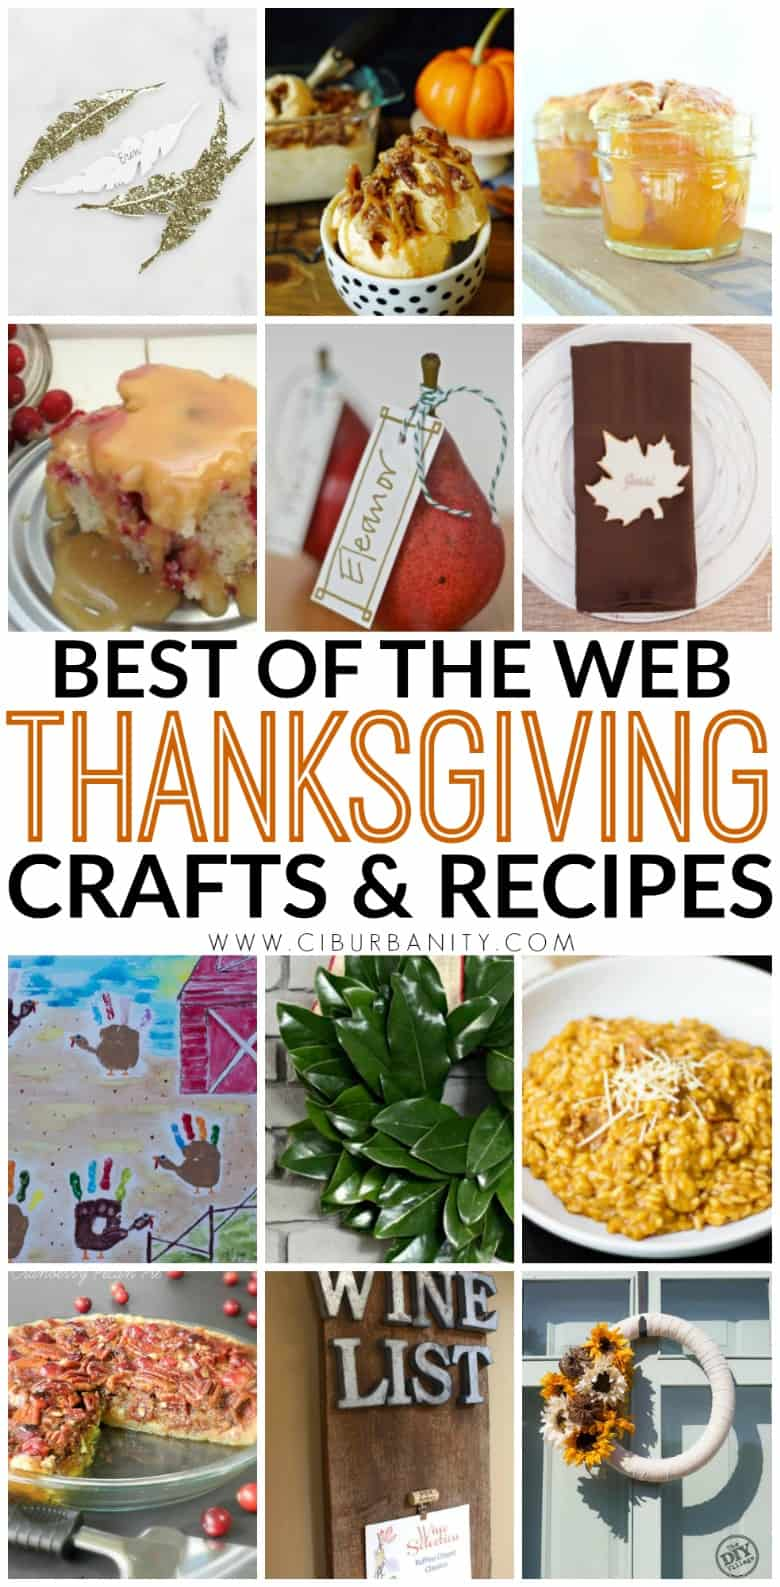 Best Thanksgiving crafts, recipes and decorating ideas.